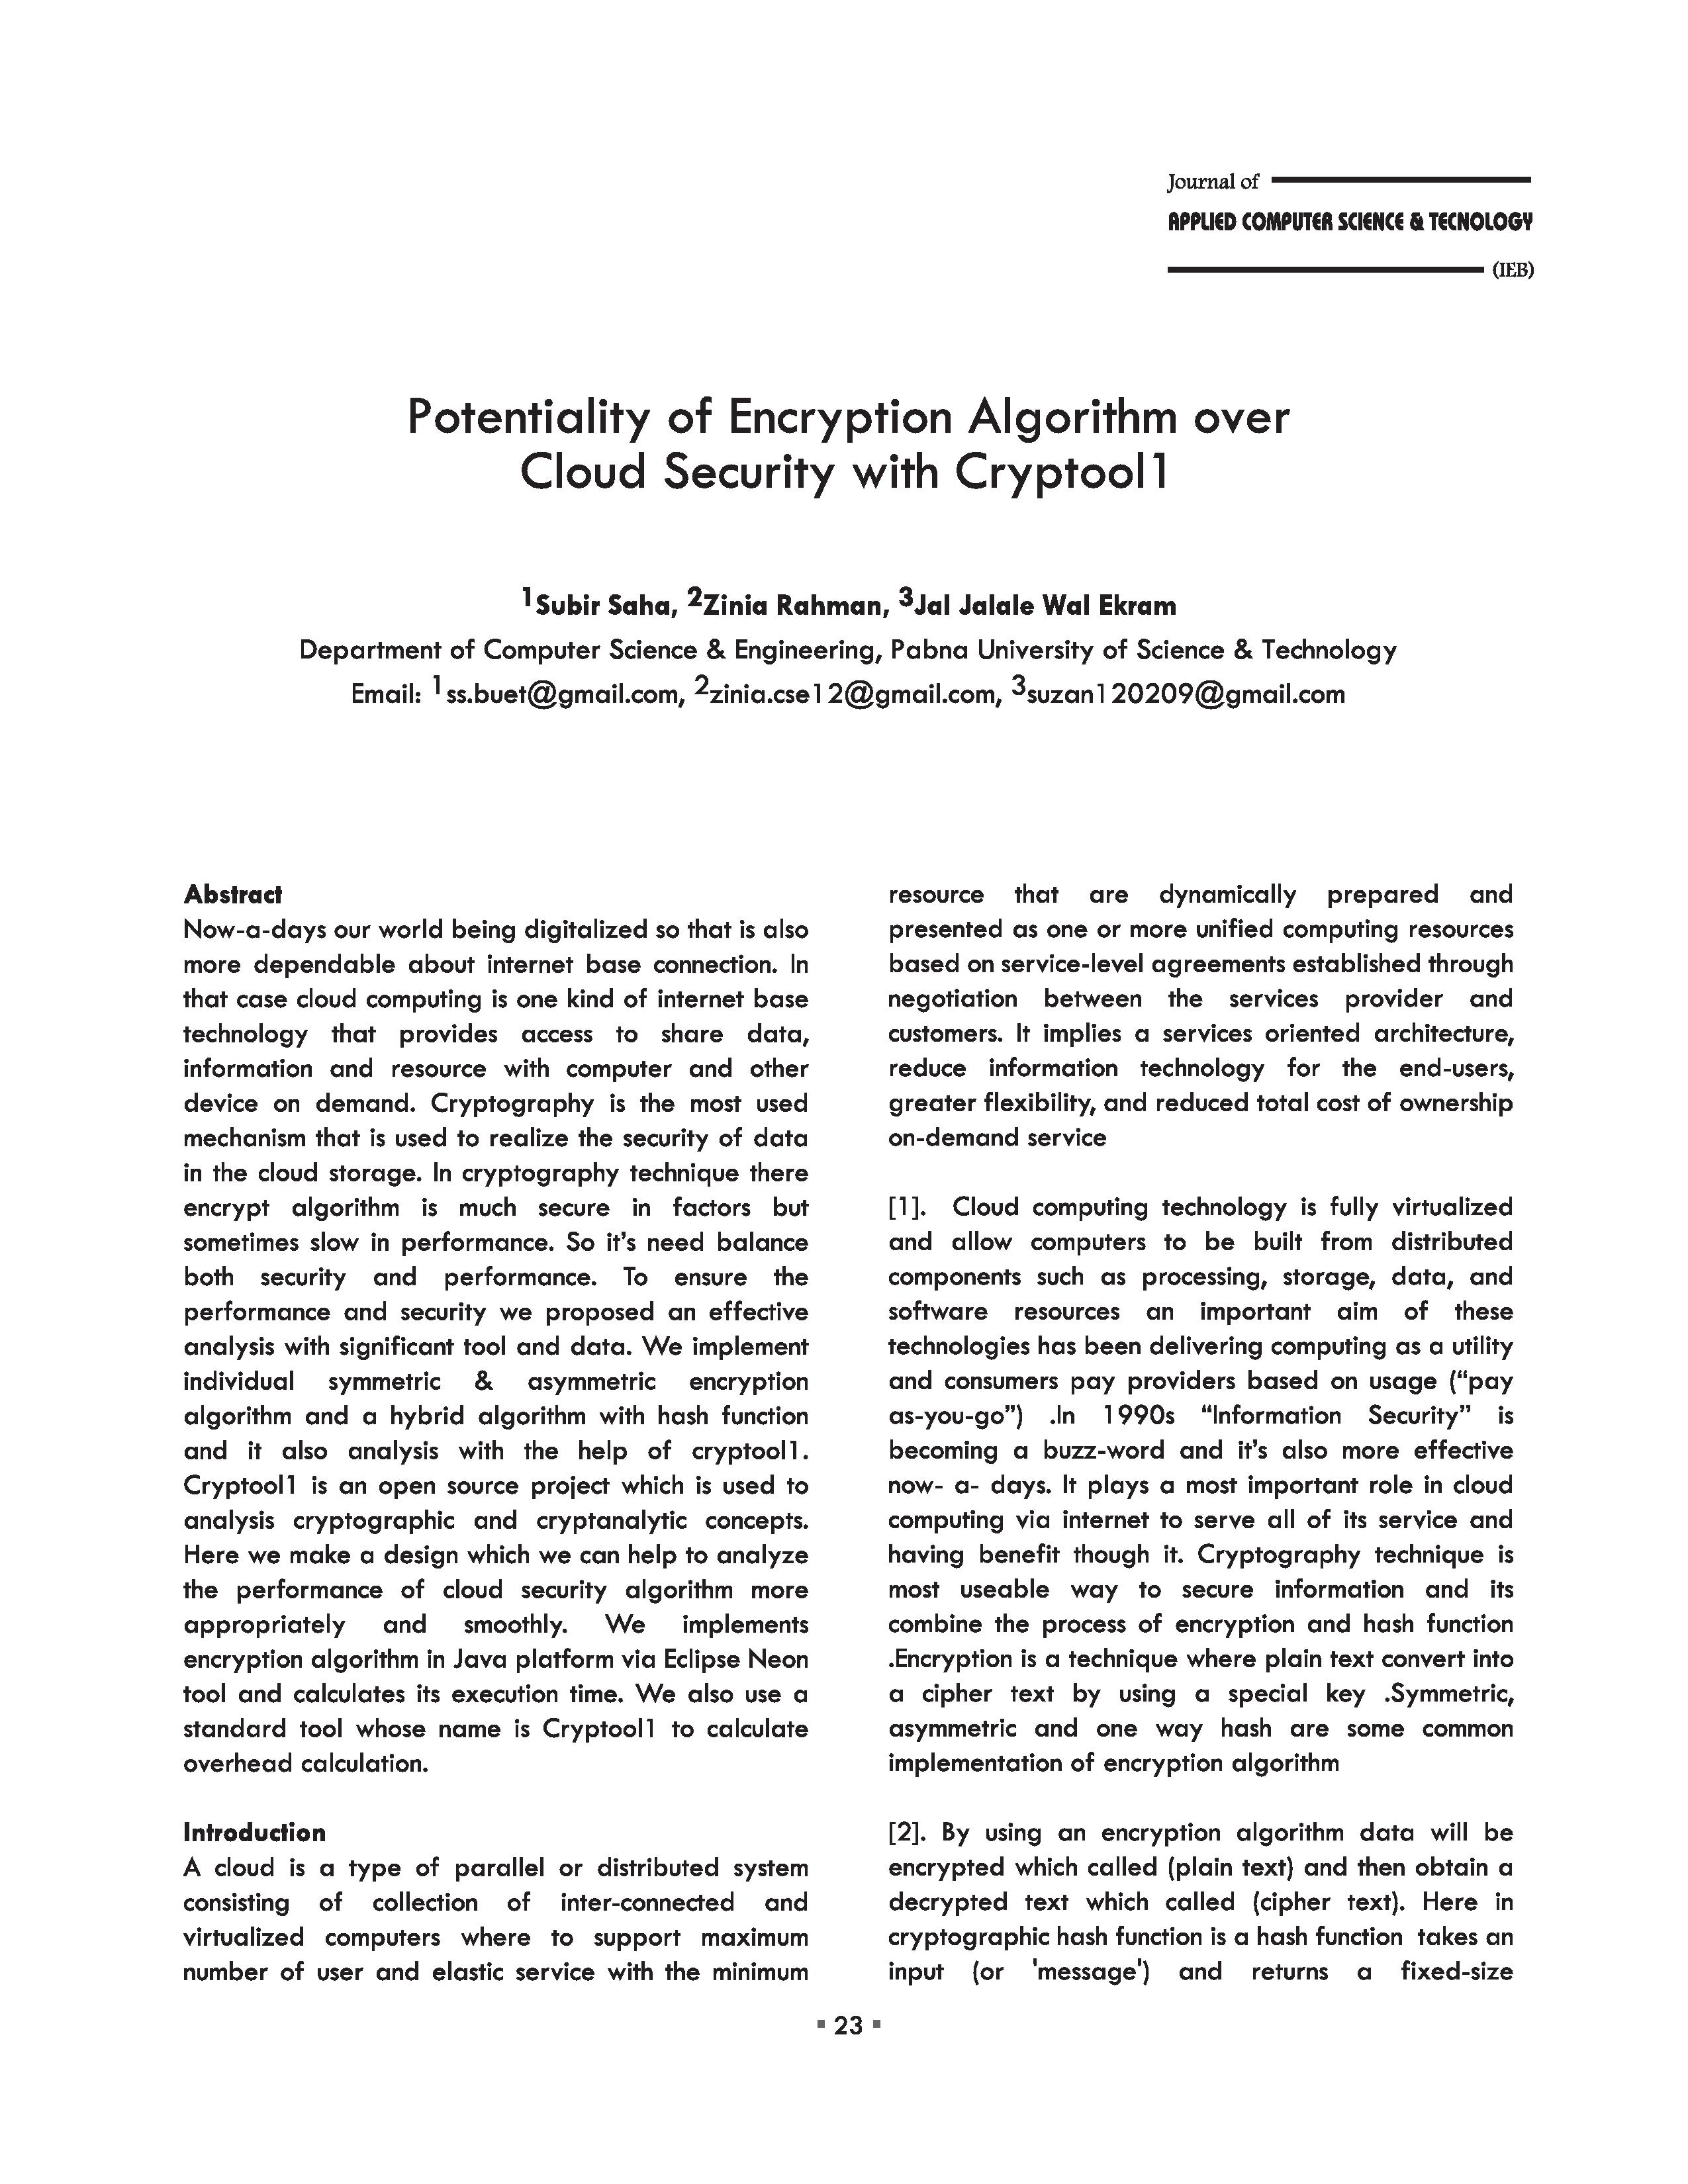 Potentiality of Encryption Algorithm over Cloud Security with Cryptool1